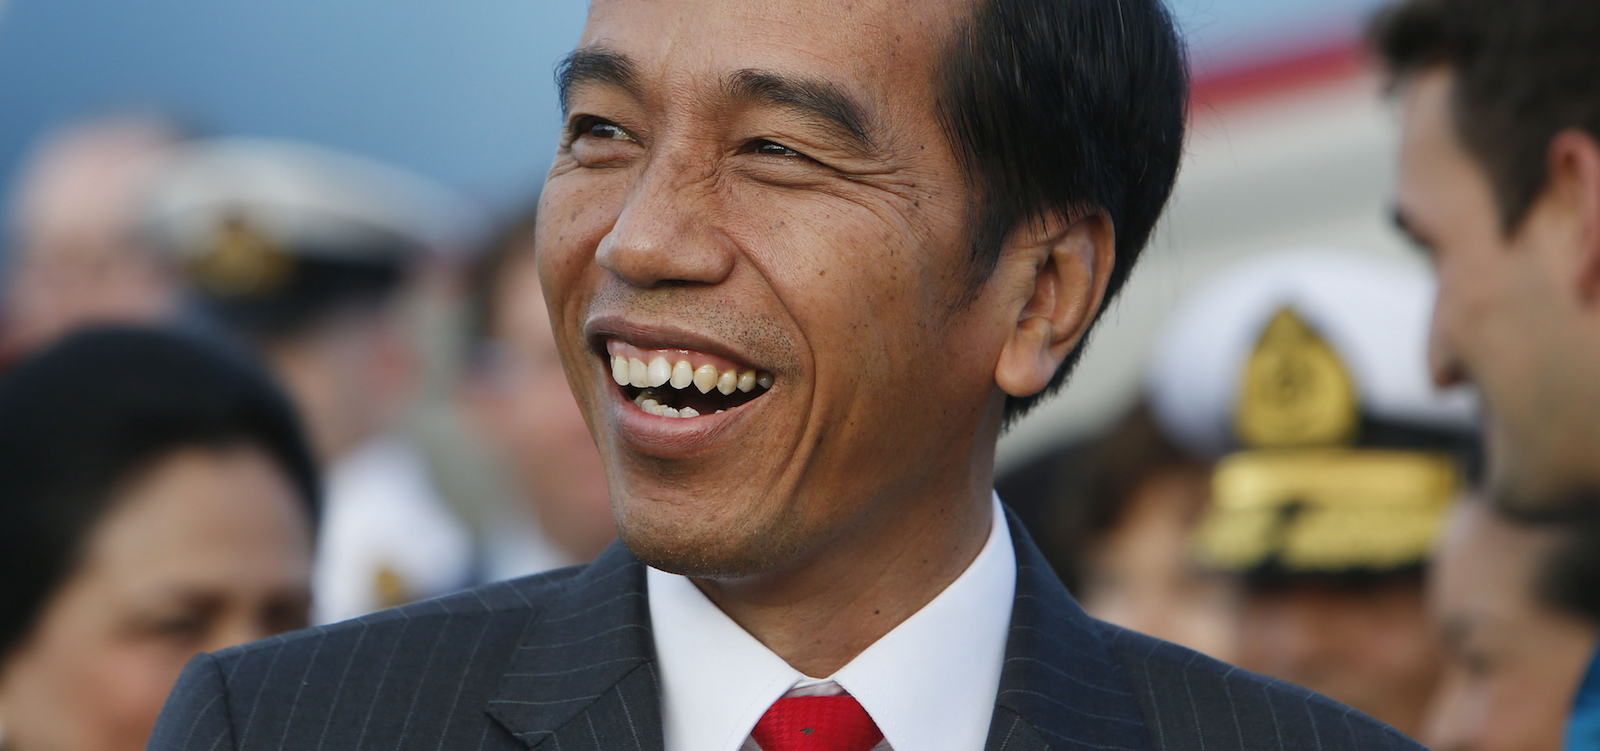 Indonesian President Joko Widodo in Sydney in March (Photo: aseaninaus/Flickr)